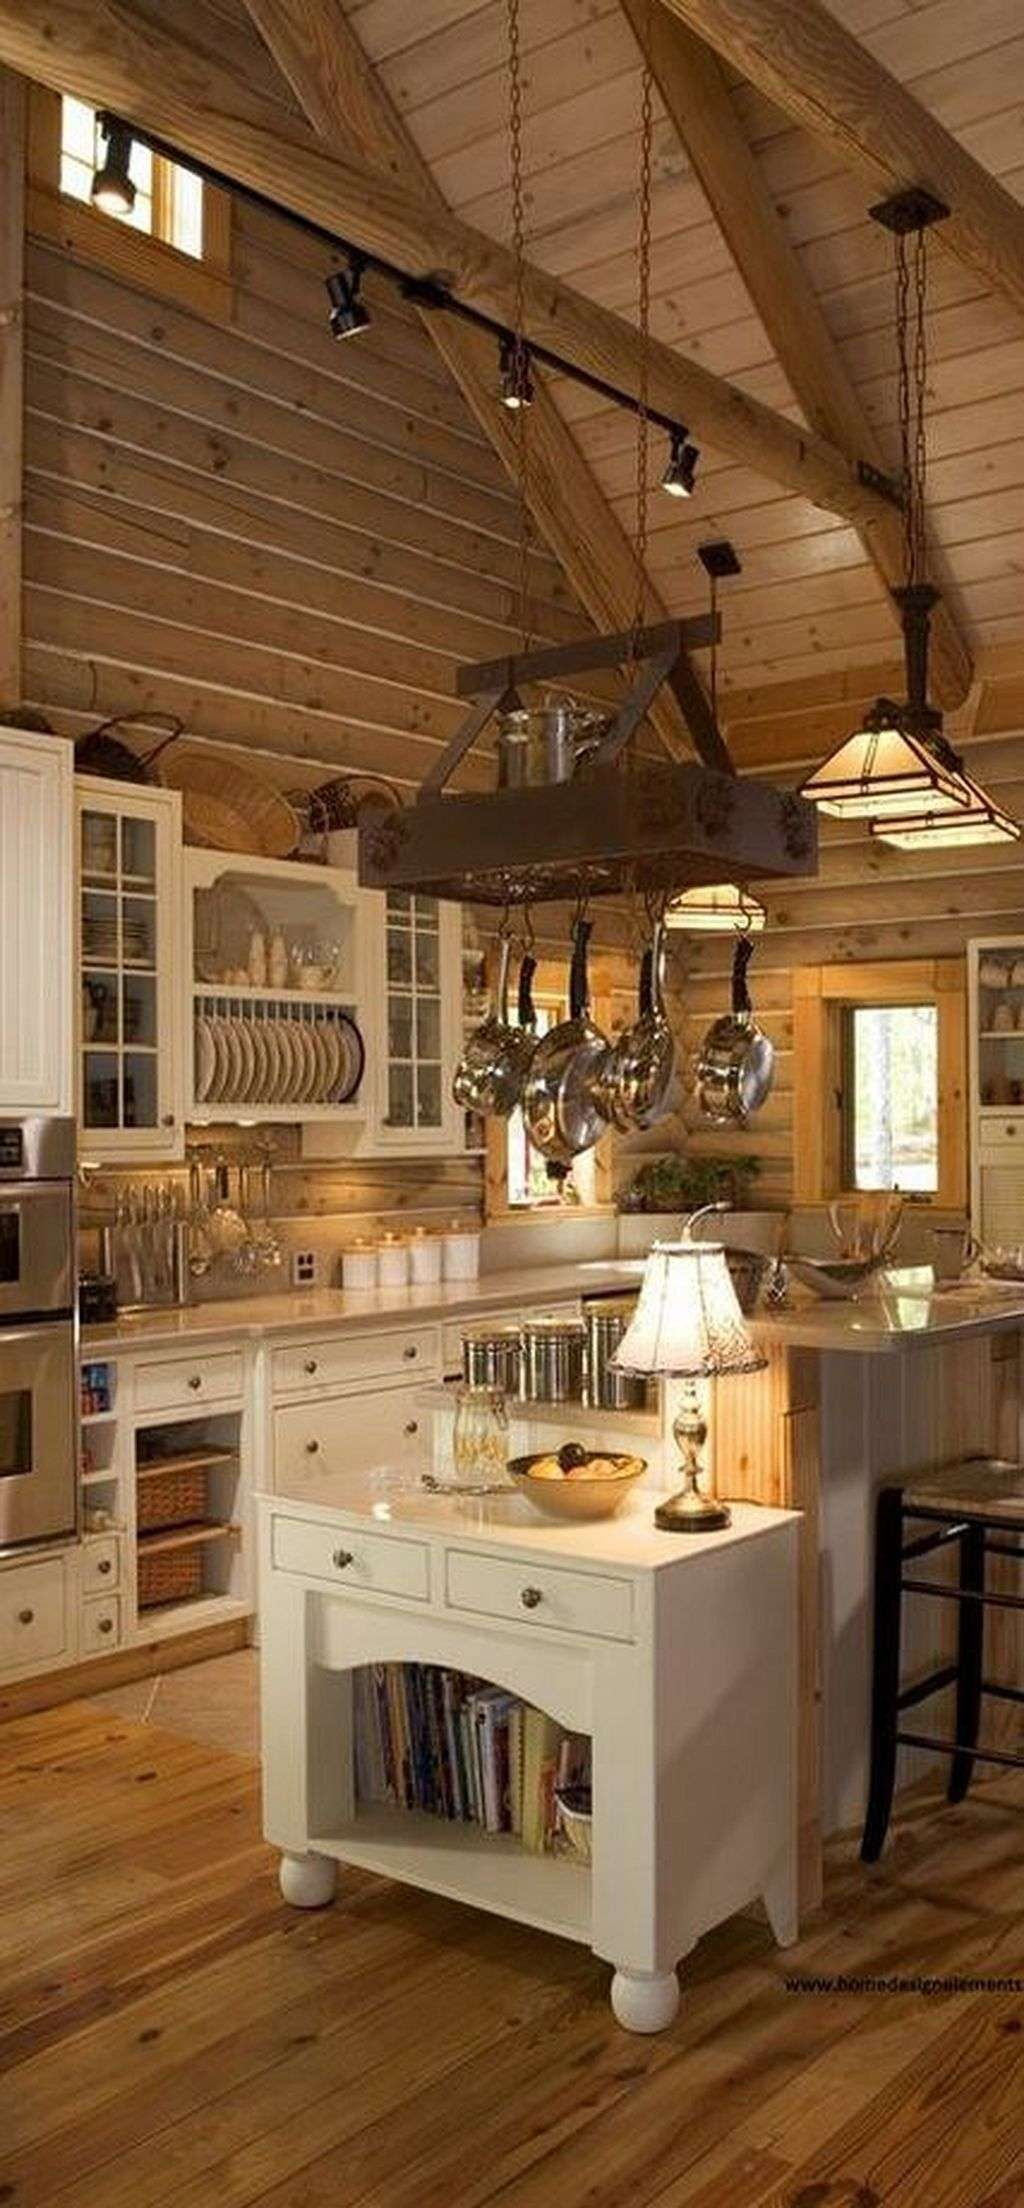 72 Log Cabin Kitchen Ideas Design Ideas Of Lake House Kitchen Ideas Log Home Kitchens Log Home Floor Plans Rustic Kitchen